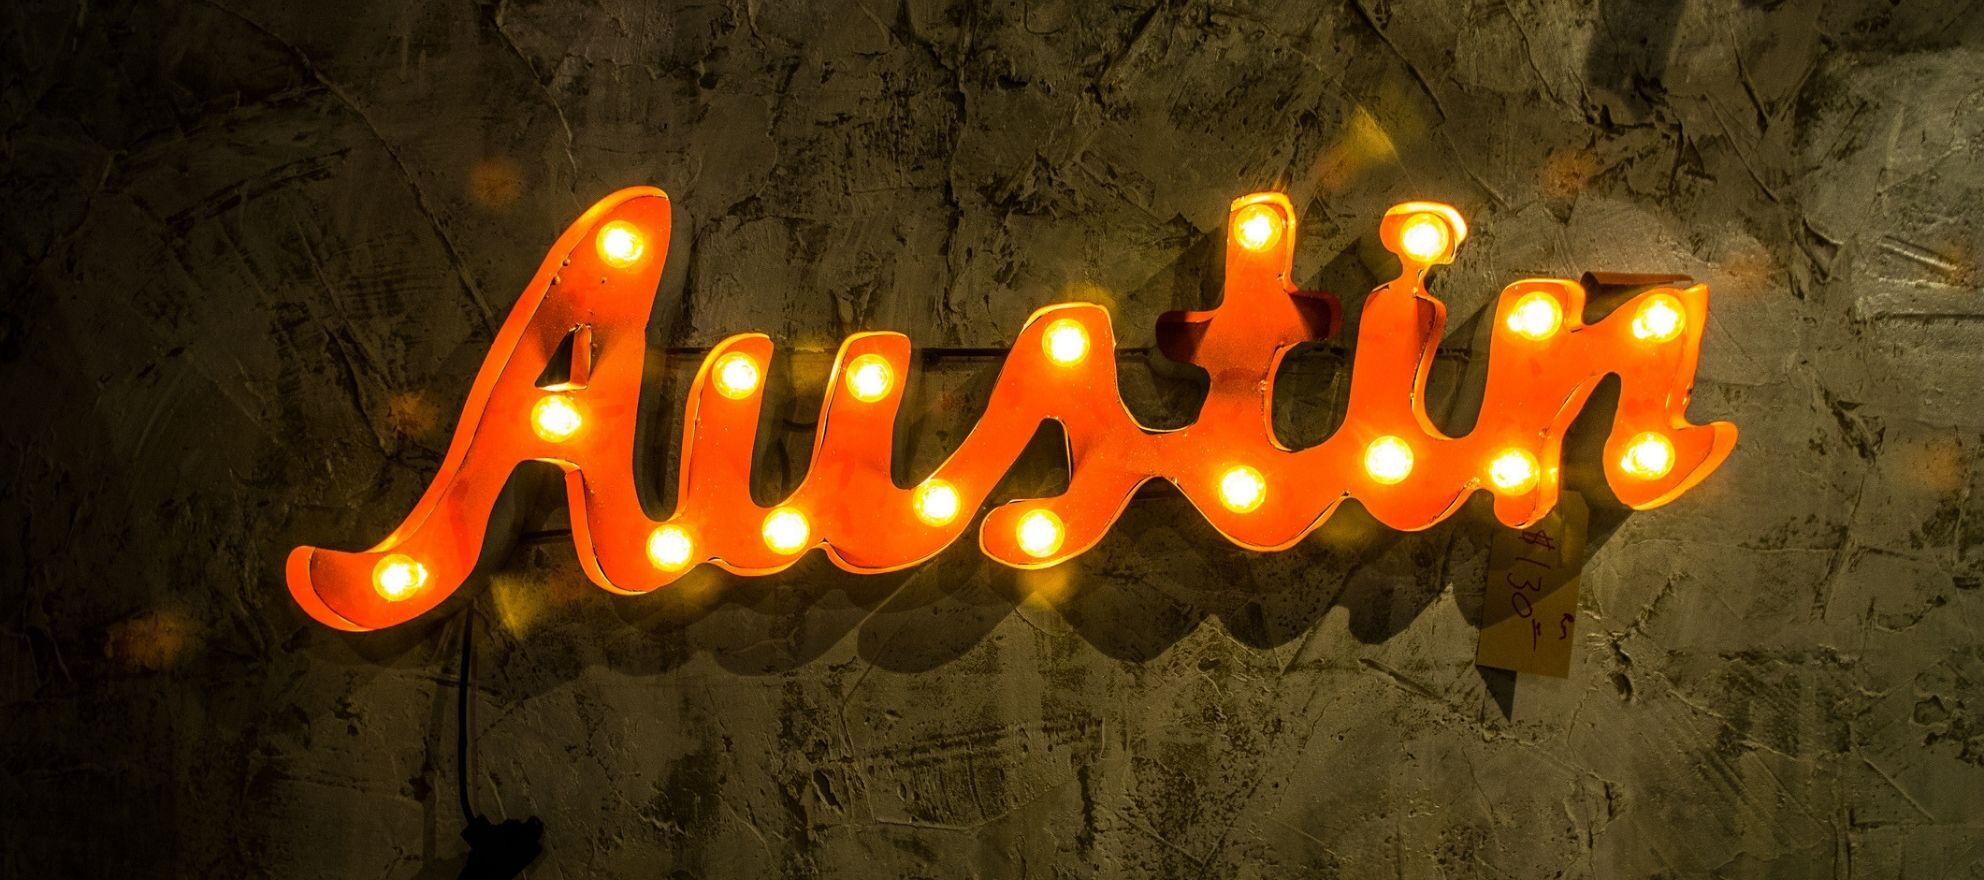 Redfin Now expands to Austin, escalating heated iBuyer war